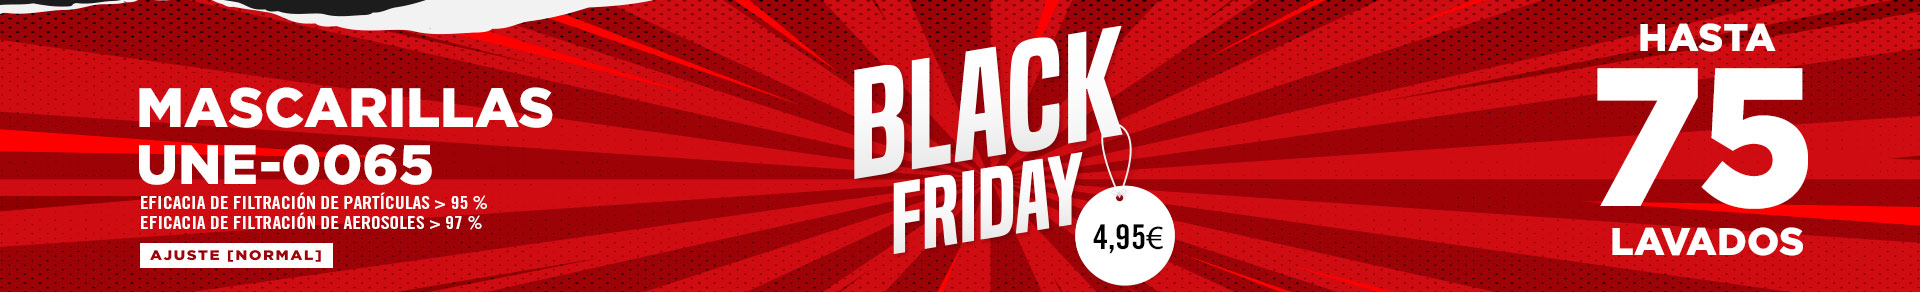 Black Friday. Descuentos en Mascarillas de tela Hologadas